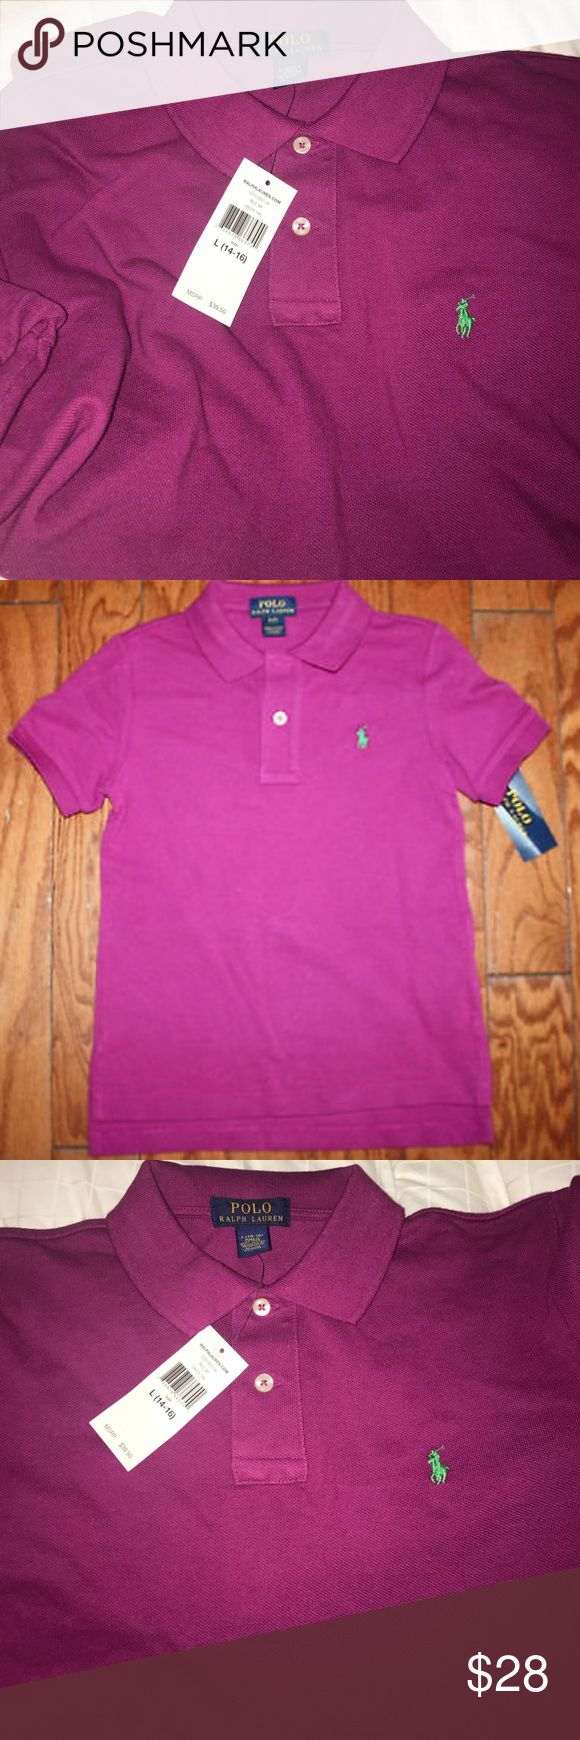 Polo Ralph Lauren Pique Polo Short-sleeve cotton mesh polo shirt featuring: ribbed collar and armbands two-button placket polo player embroidery on the chest side-vented hem Imported., Color: White, Material: Mesh,Cotton, Pattern:Embroidery Polo by Ralph Lauren Shirts & Tops Polos